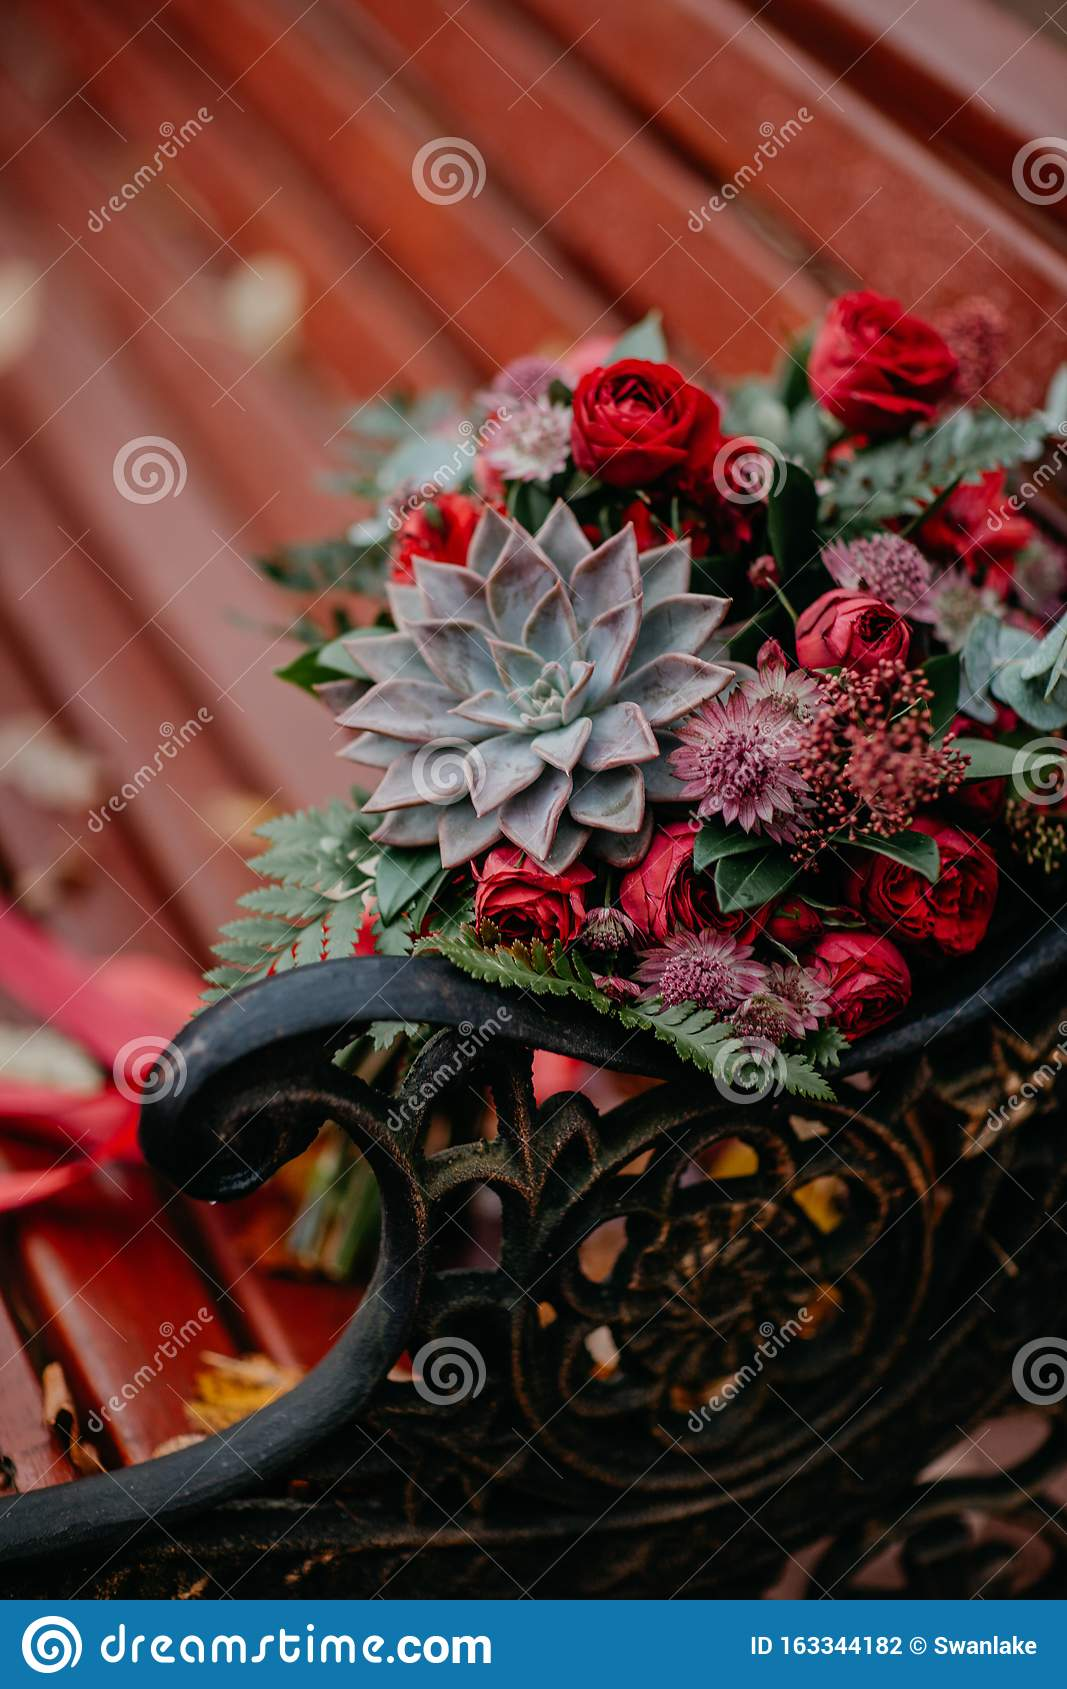 Beautiful Autumn Bouquet With Red Flowers And Succulents On A Bench Outside Stock Photo Image Of Colorful Bright 163344182